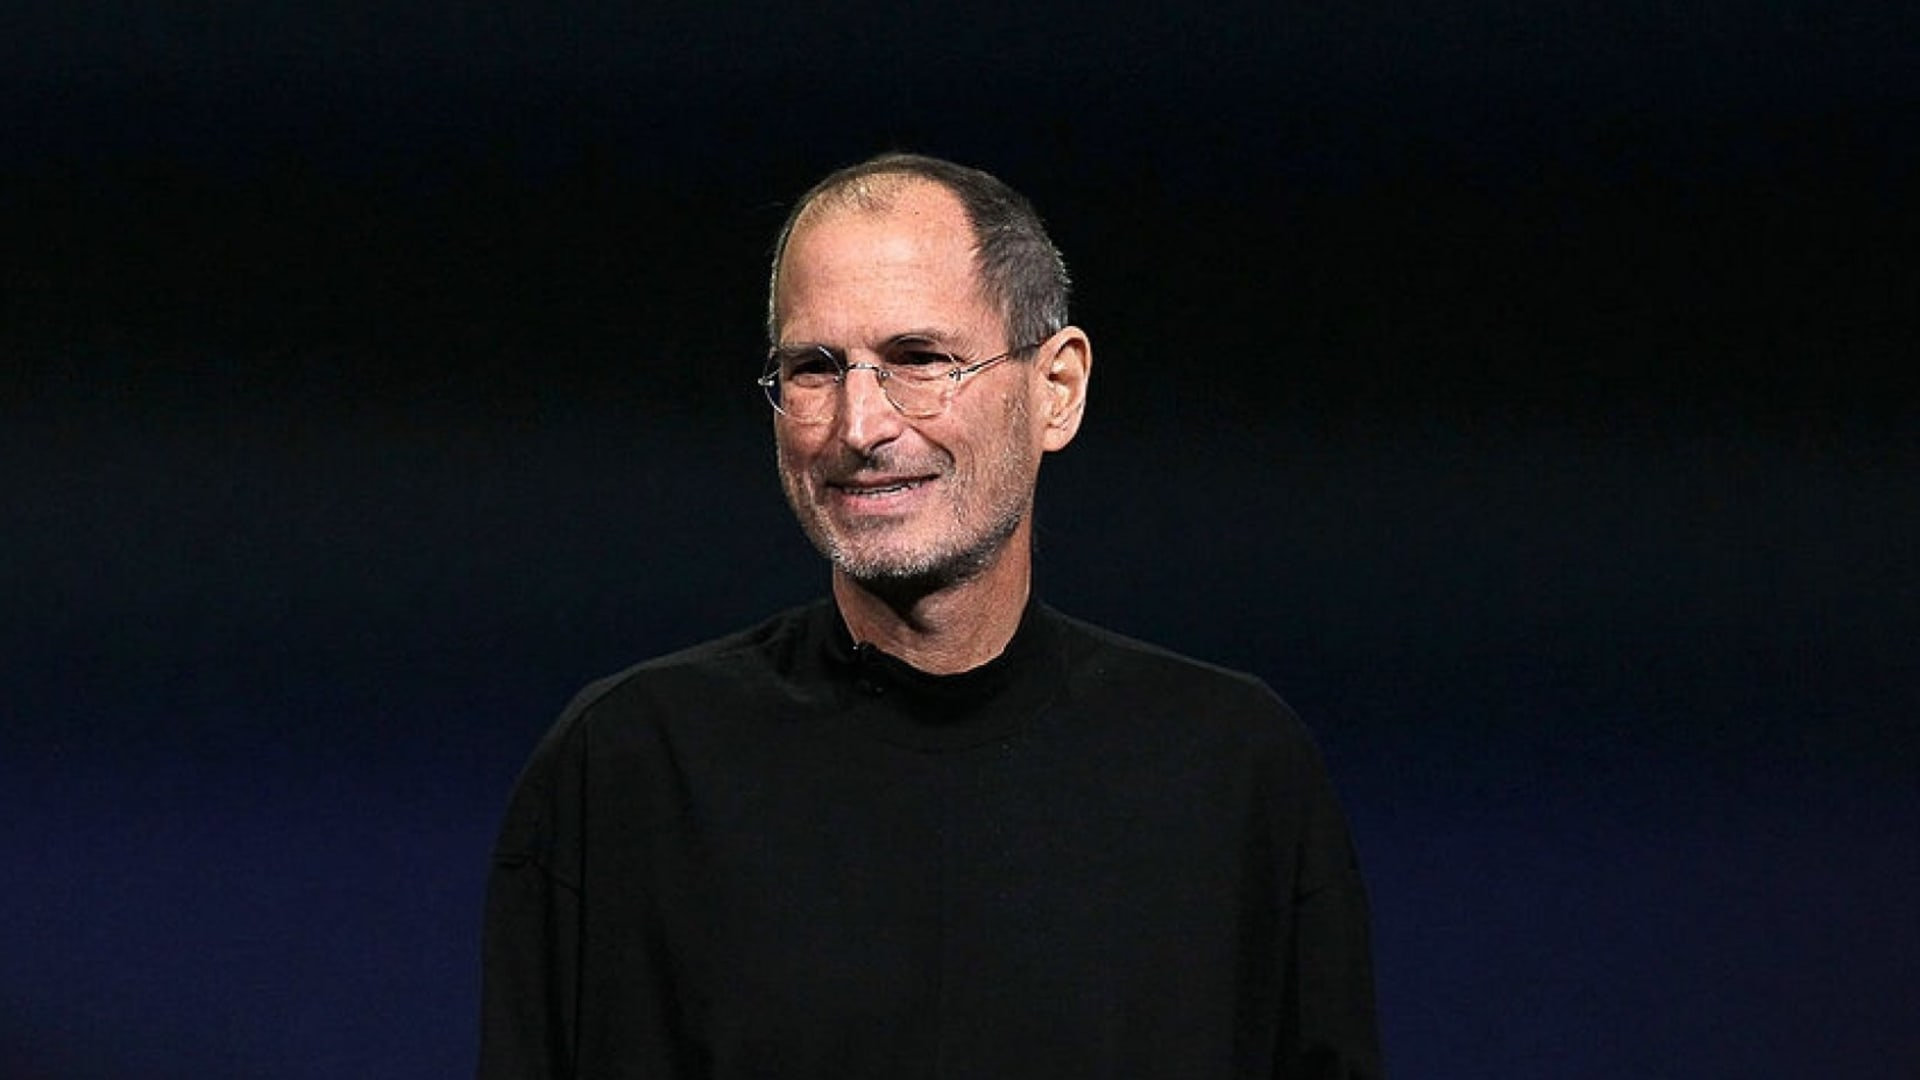 10 Years After Steve Jobs's Death, This Is Still the Most Important Lesson He Taught Us